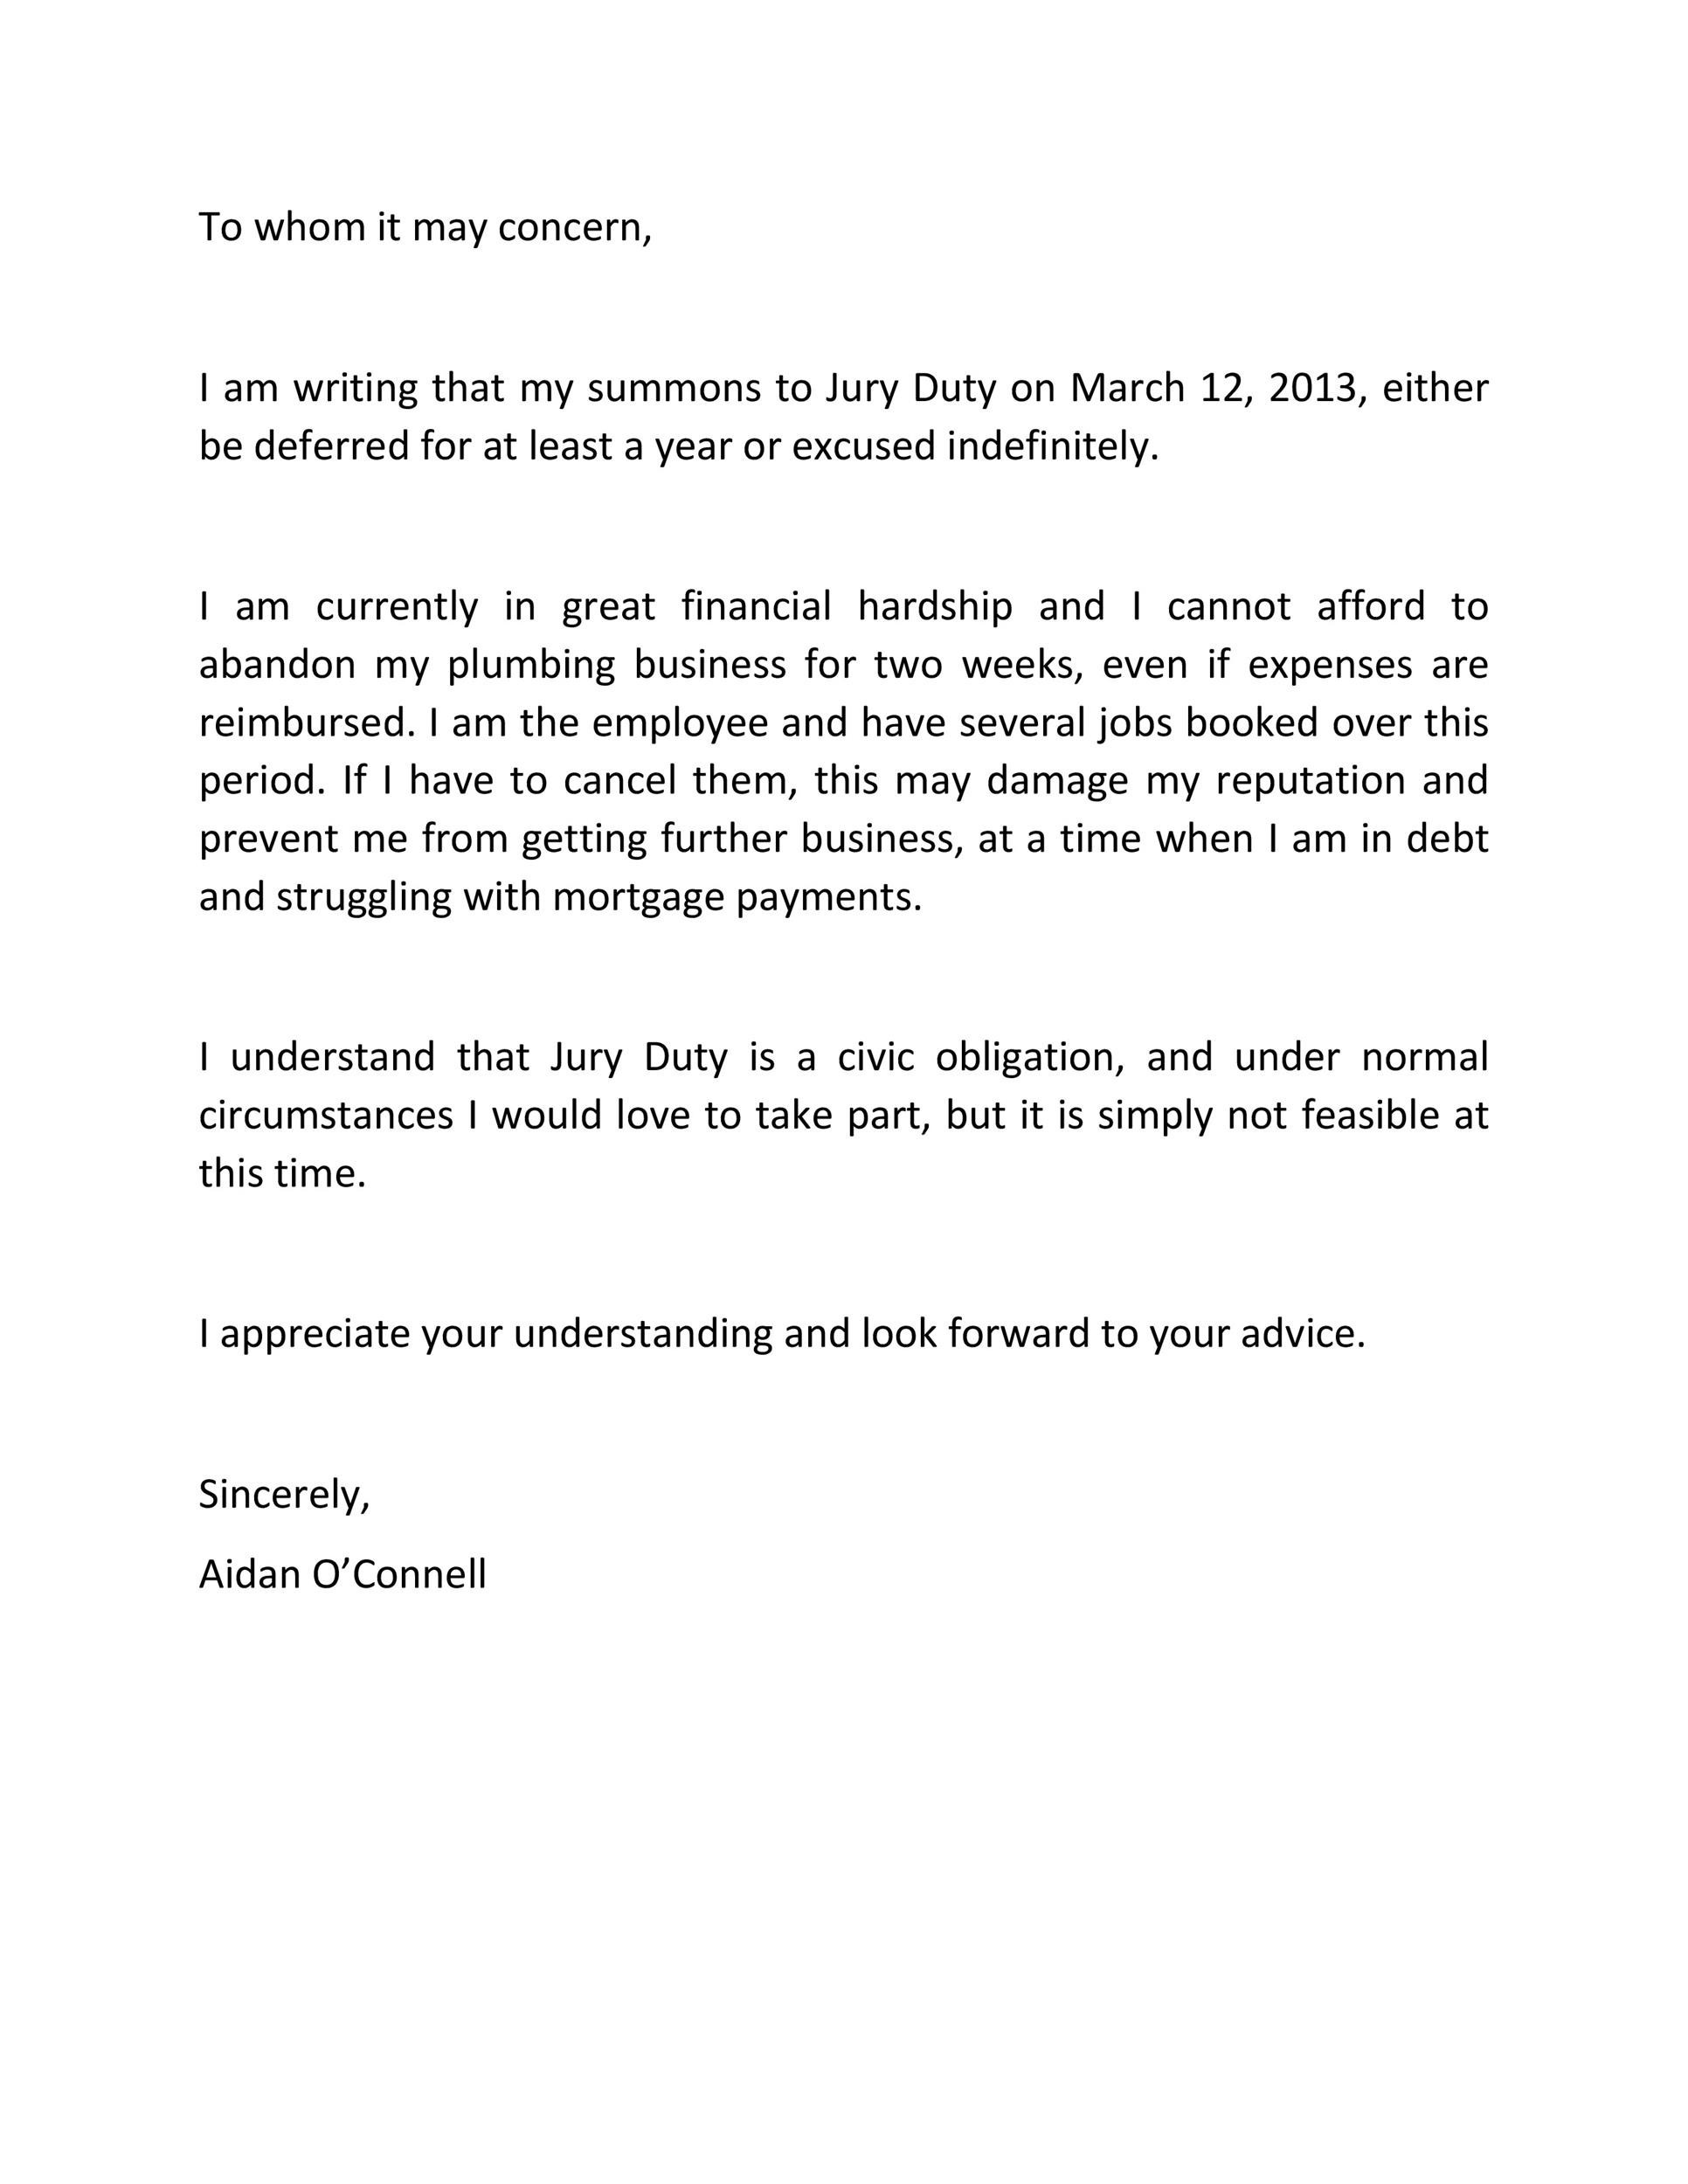 33 Best Jury Duty Excuse Letters +Tips ᐅ Template Lab